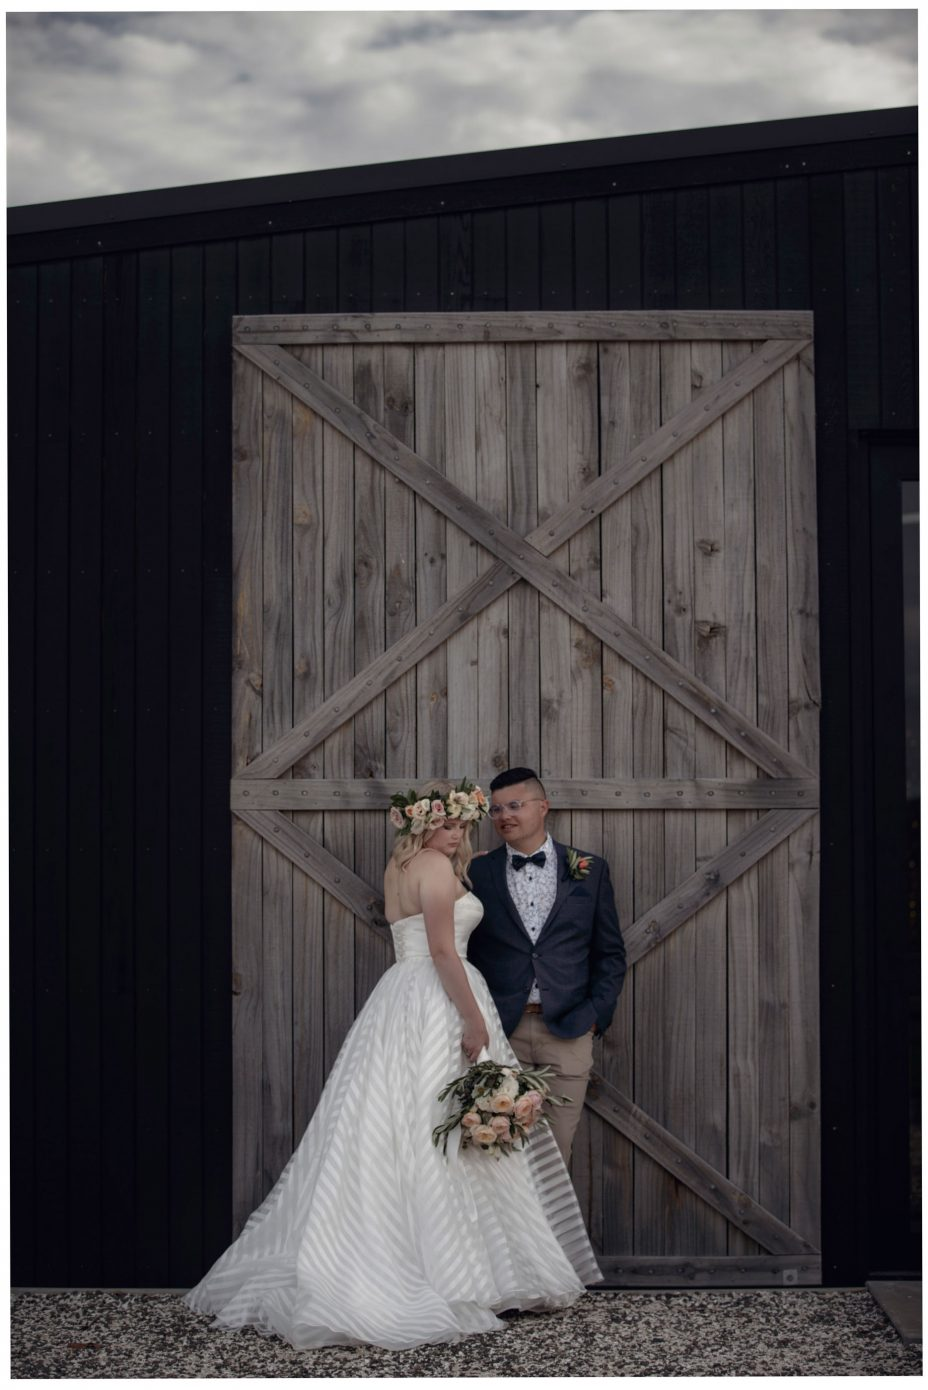 Bride and groom lean against the large wooden doors of The Barn wedding reception venue at The Hunting Lodge Winery